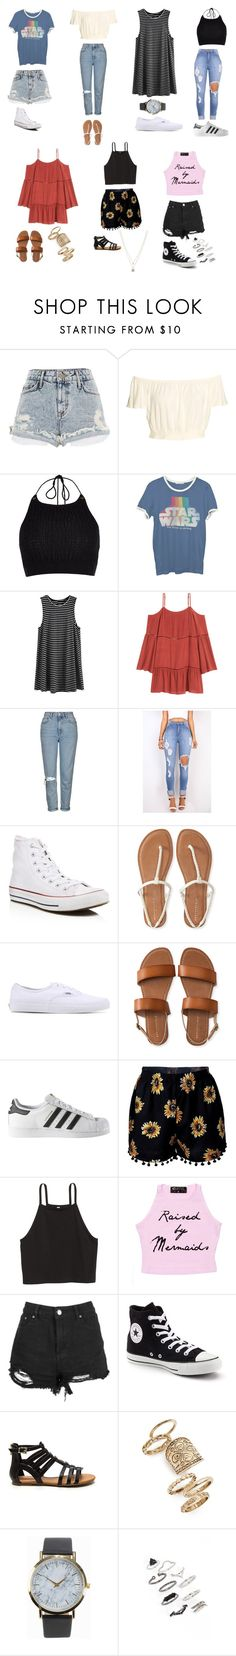 """""""Week at Disney"""" by montanna-willey ❤ liked on Polyvore featuring River Island, Junk Food Clothing, H&M, Topshop, Converse, Aéropostale, Vans, adidas, Boohoo and NLY Accessories"""